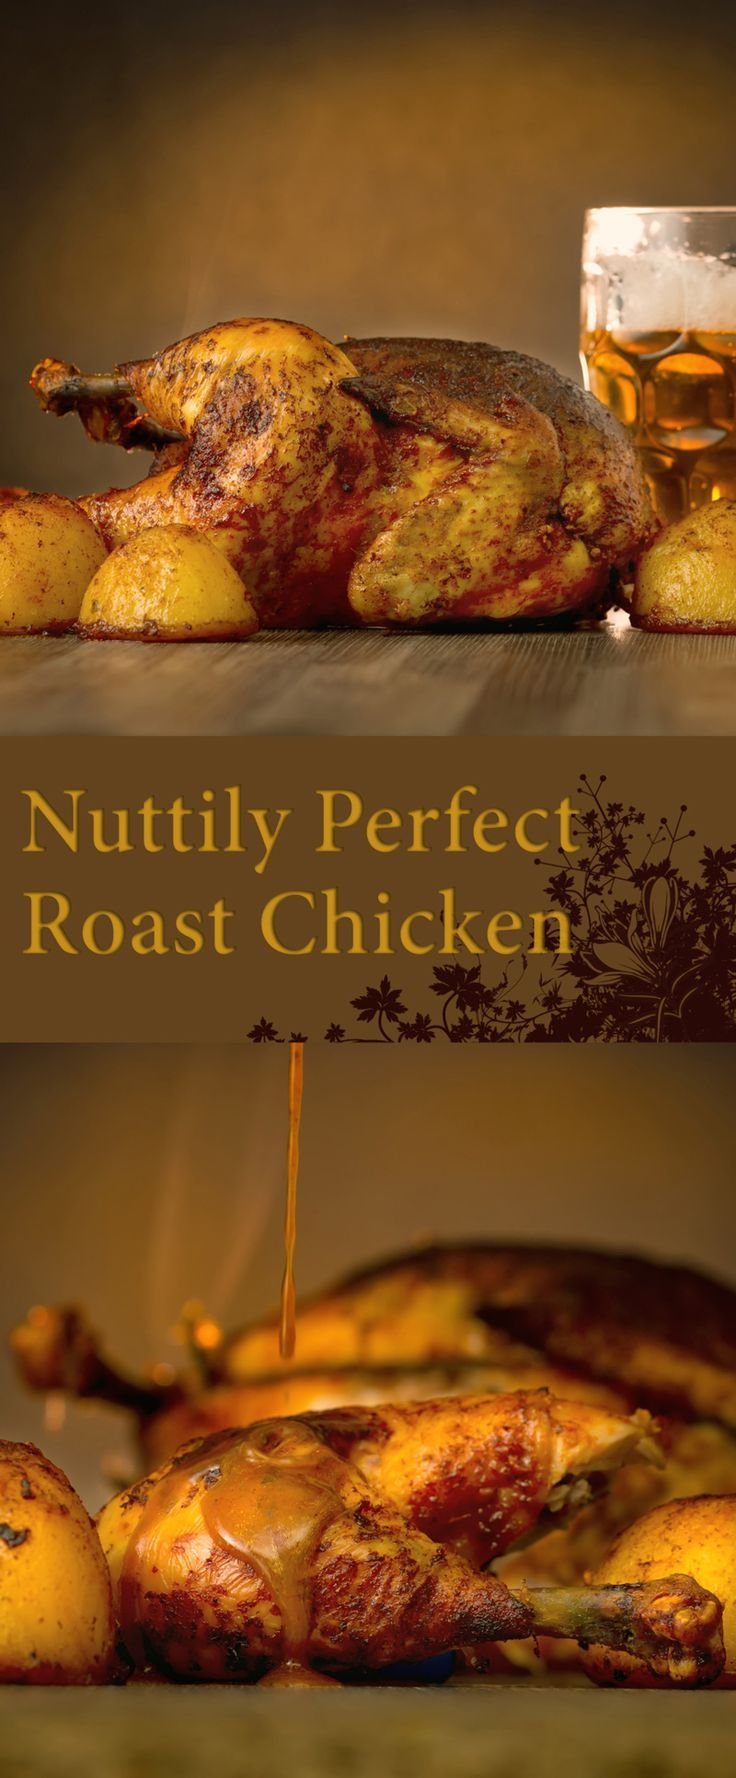 Nuttily Perfect Roast Chicken: